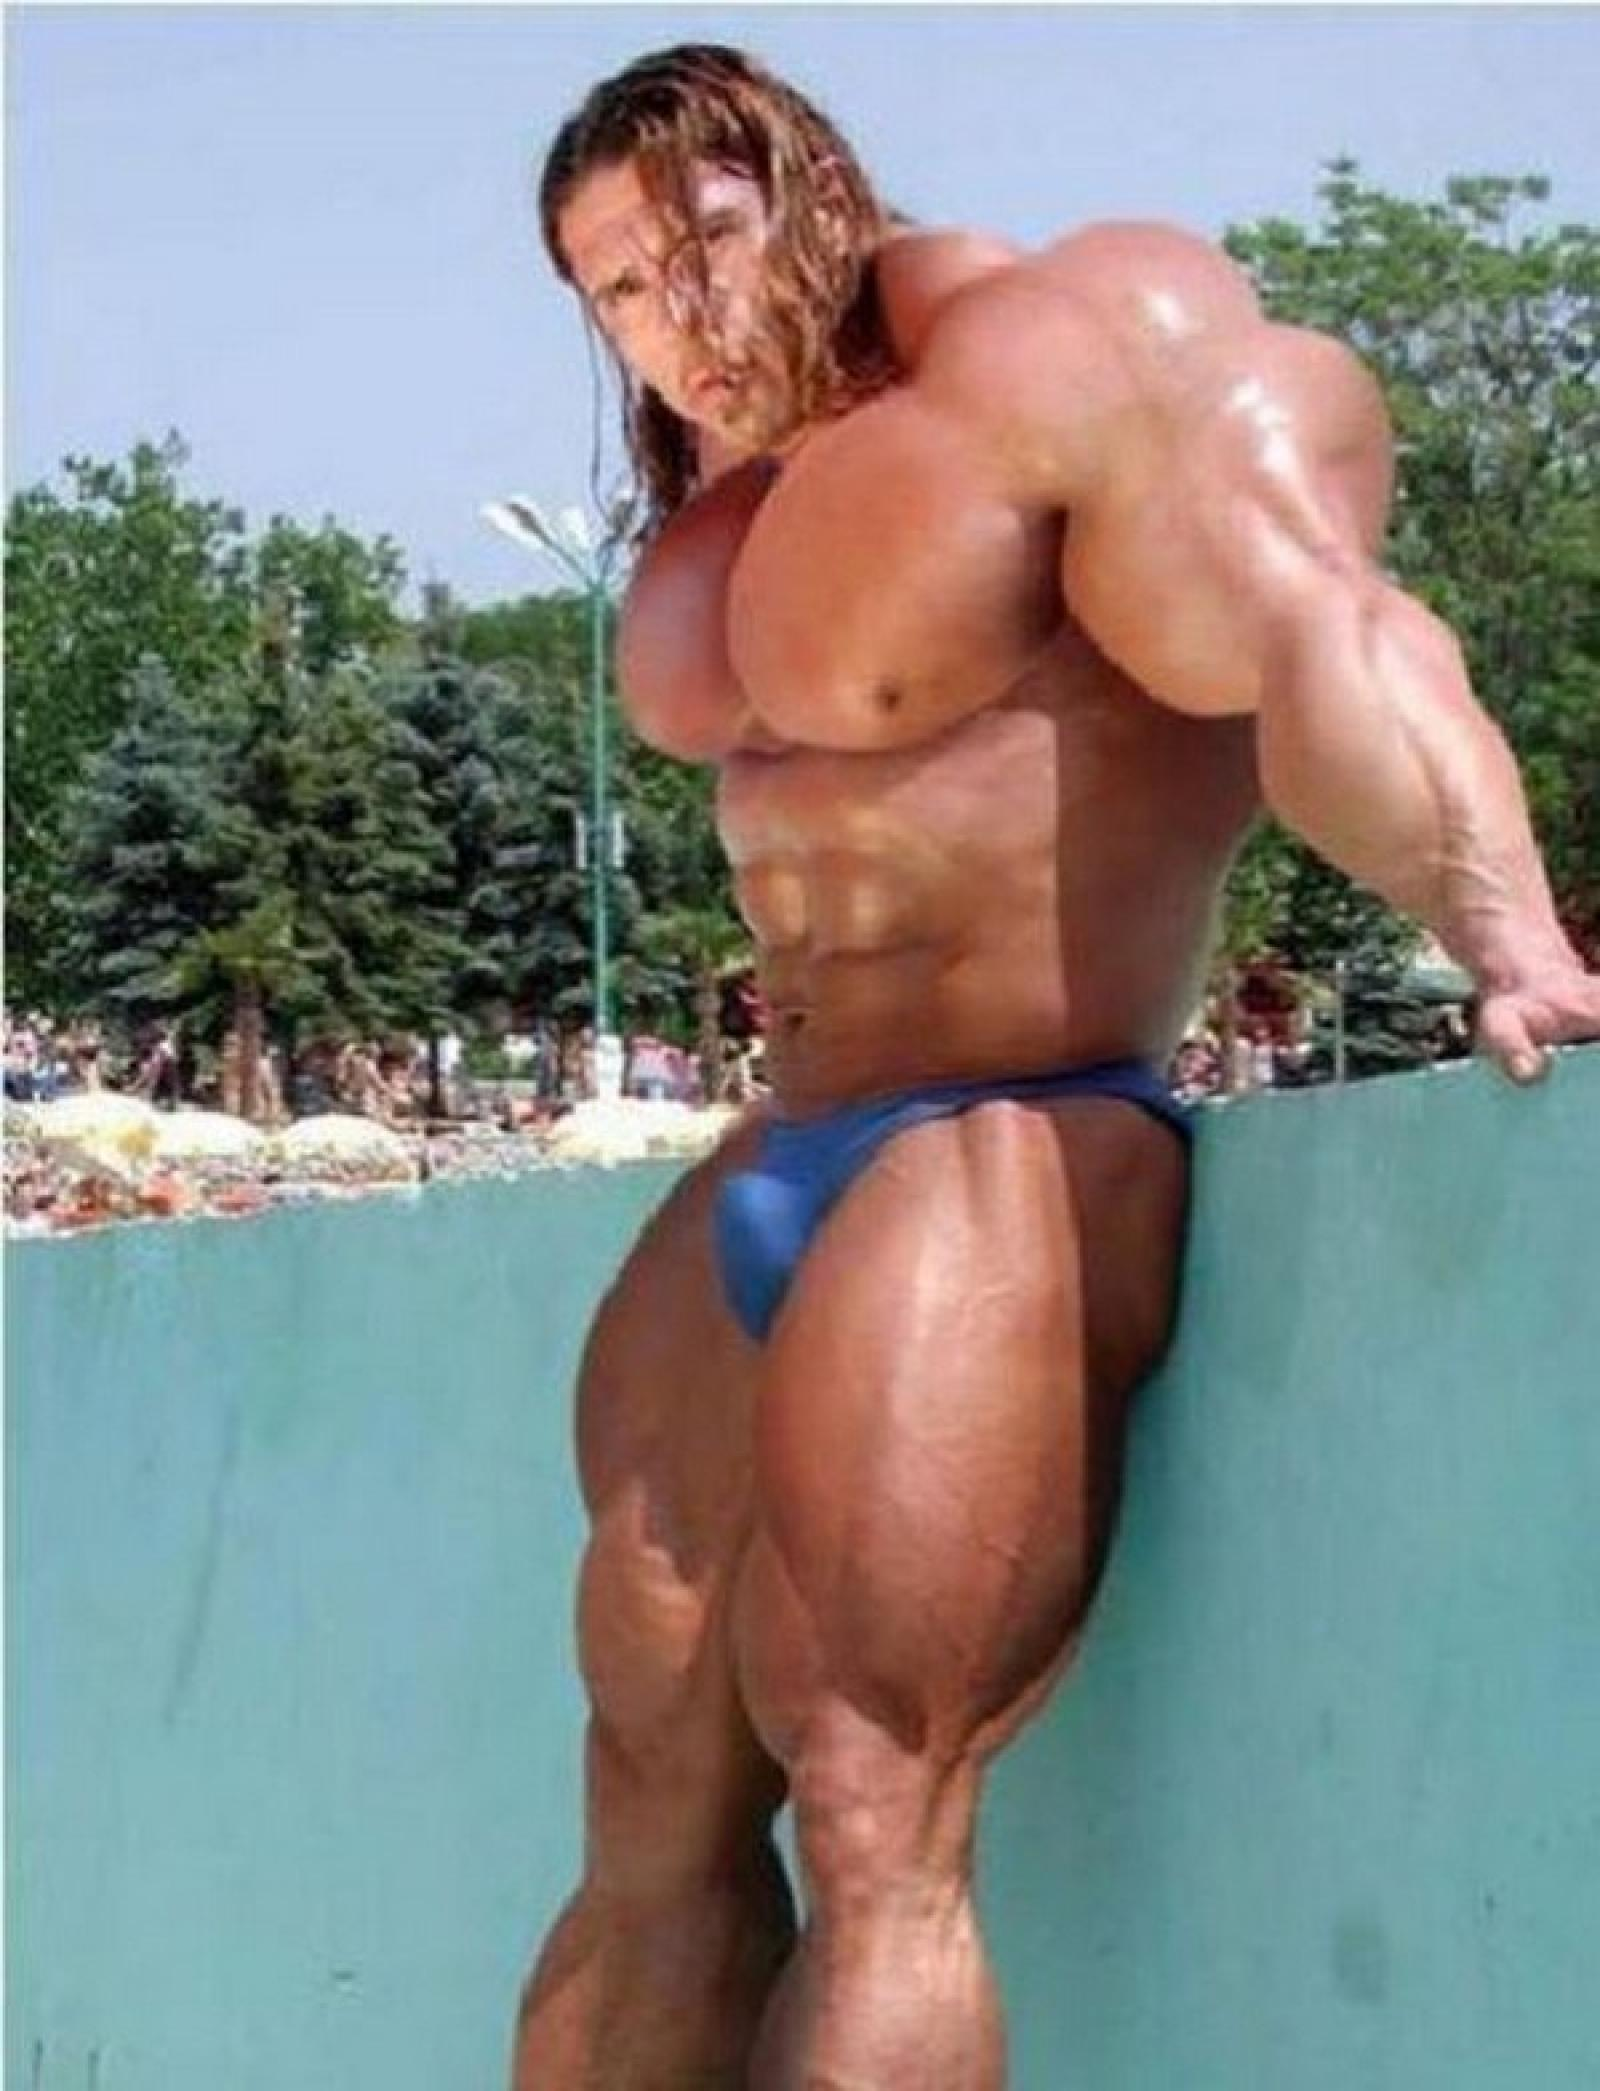 20 Extremely Ripped Bodybuilders That Actually Exist 5